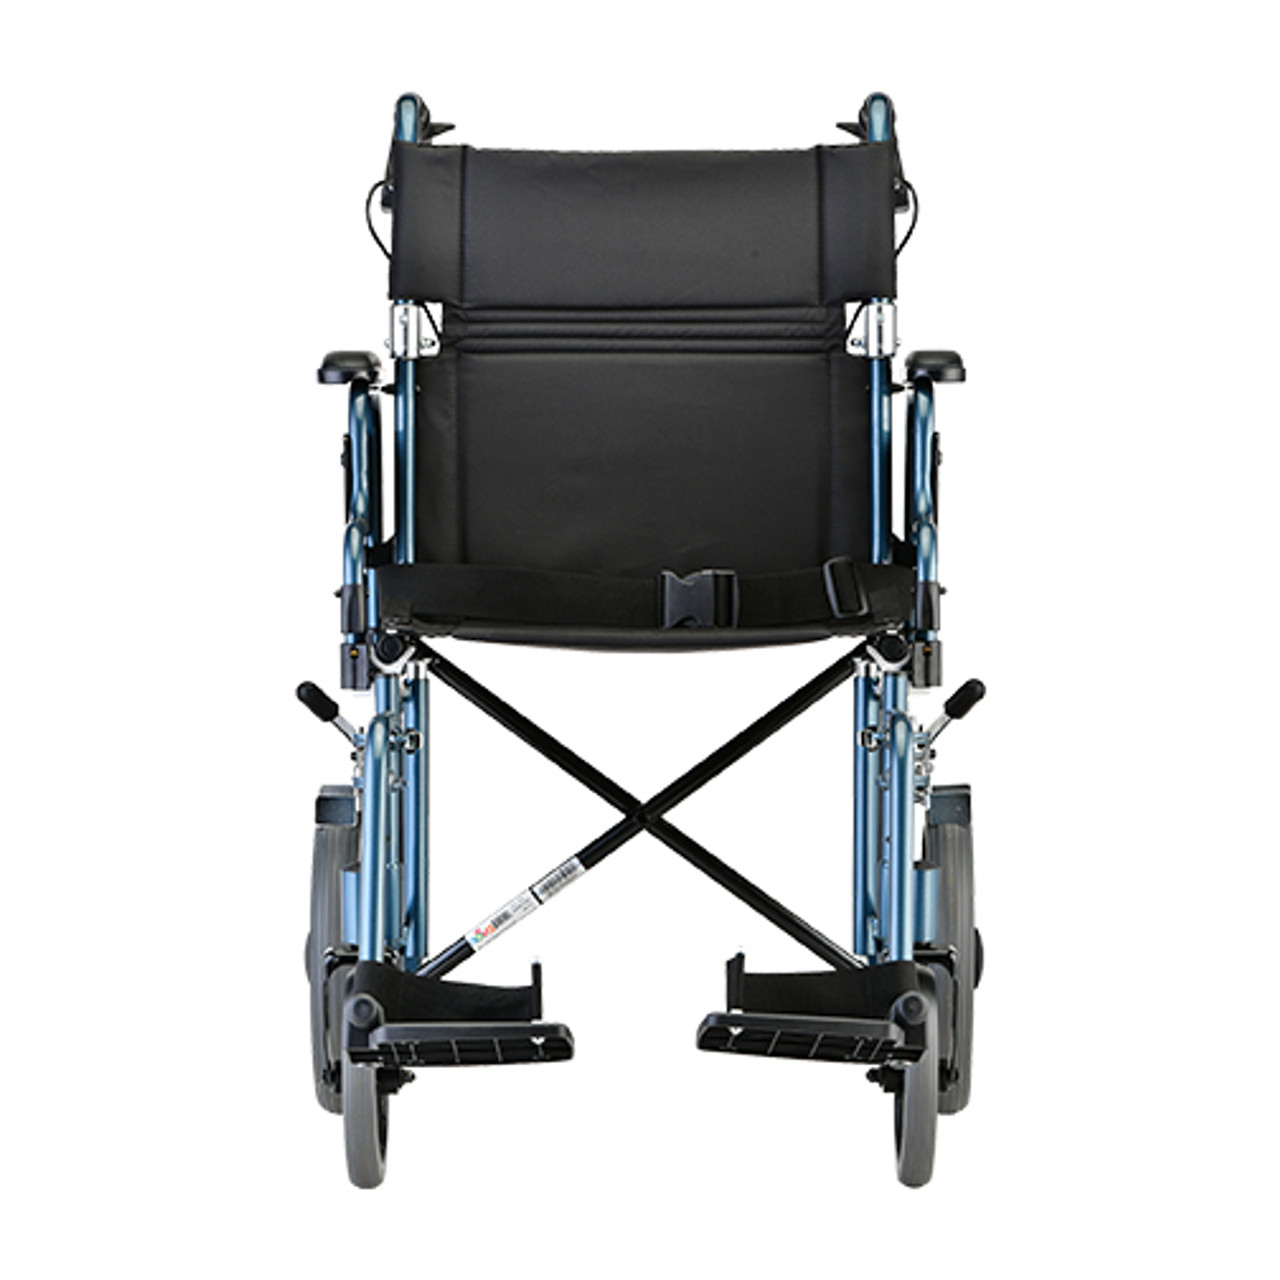 Nova model 352 19 inch transport chair with hand brakes front view